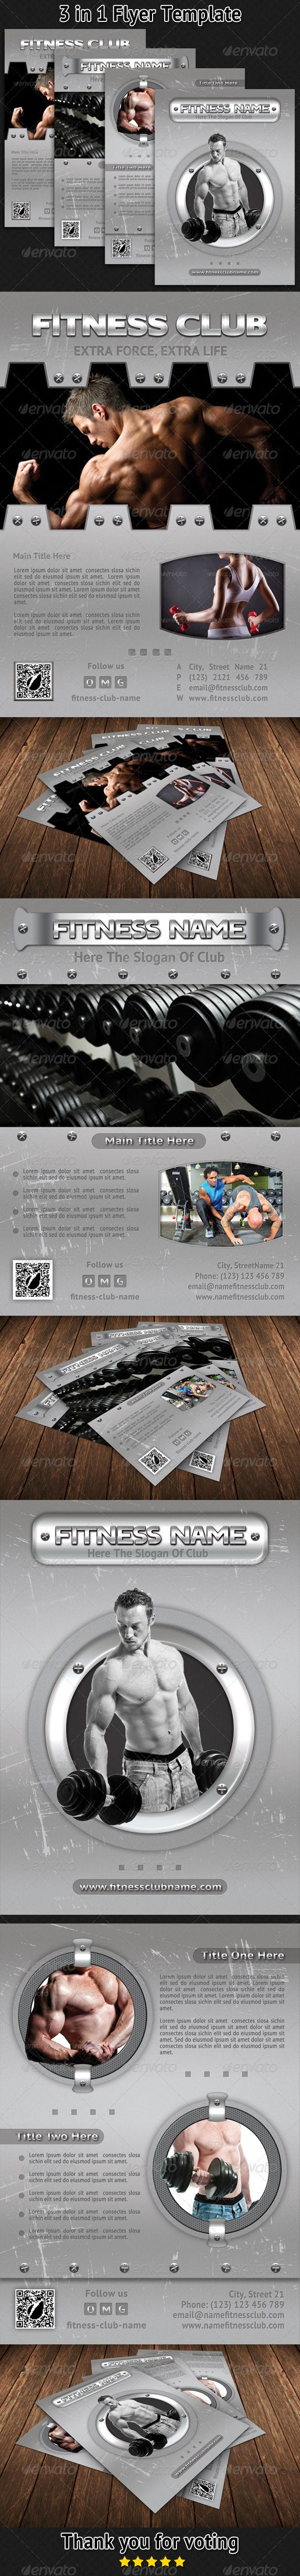 Fitness and Bodybuilding Bundle Flyer Template 01